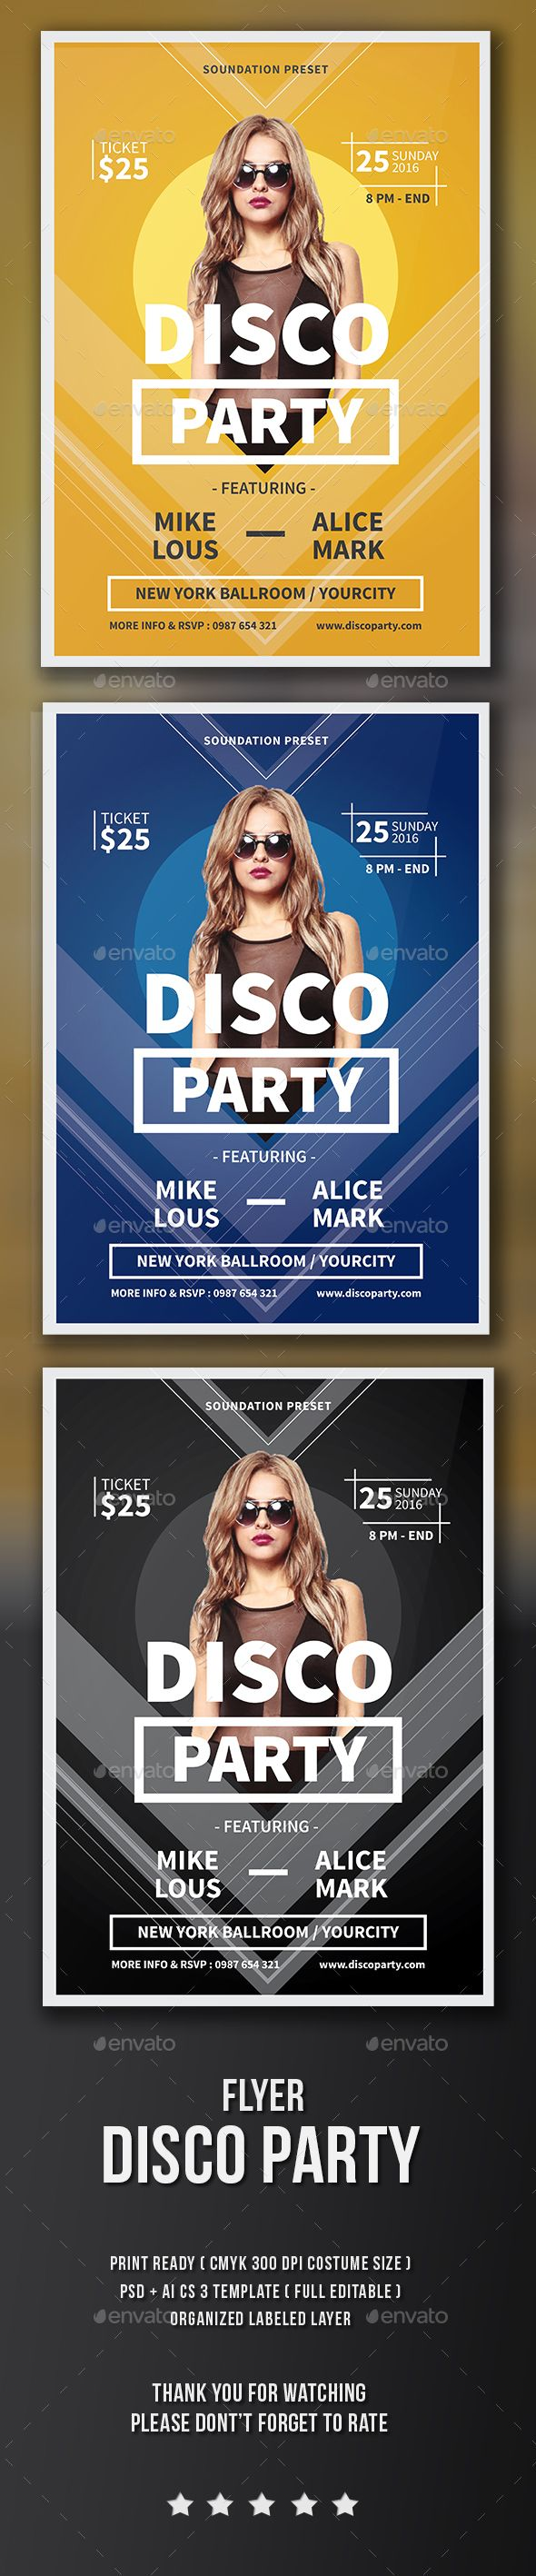 Disco Party Flyer Template PSD, Vector AI. Download here: http://graphicriver.net/item/disco-party-flyer/15491302?ref=ksioks